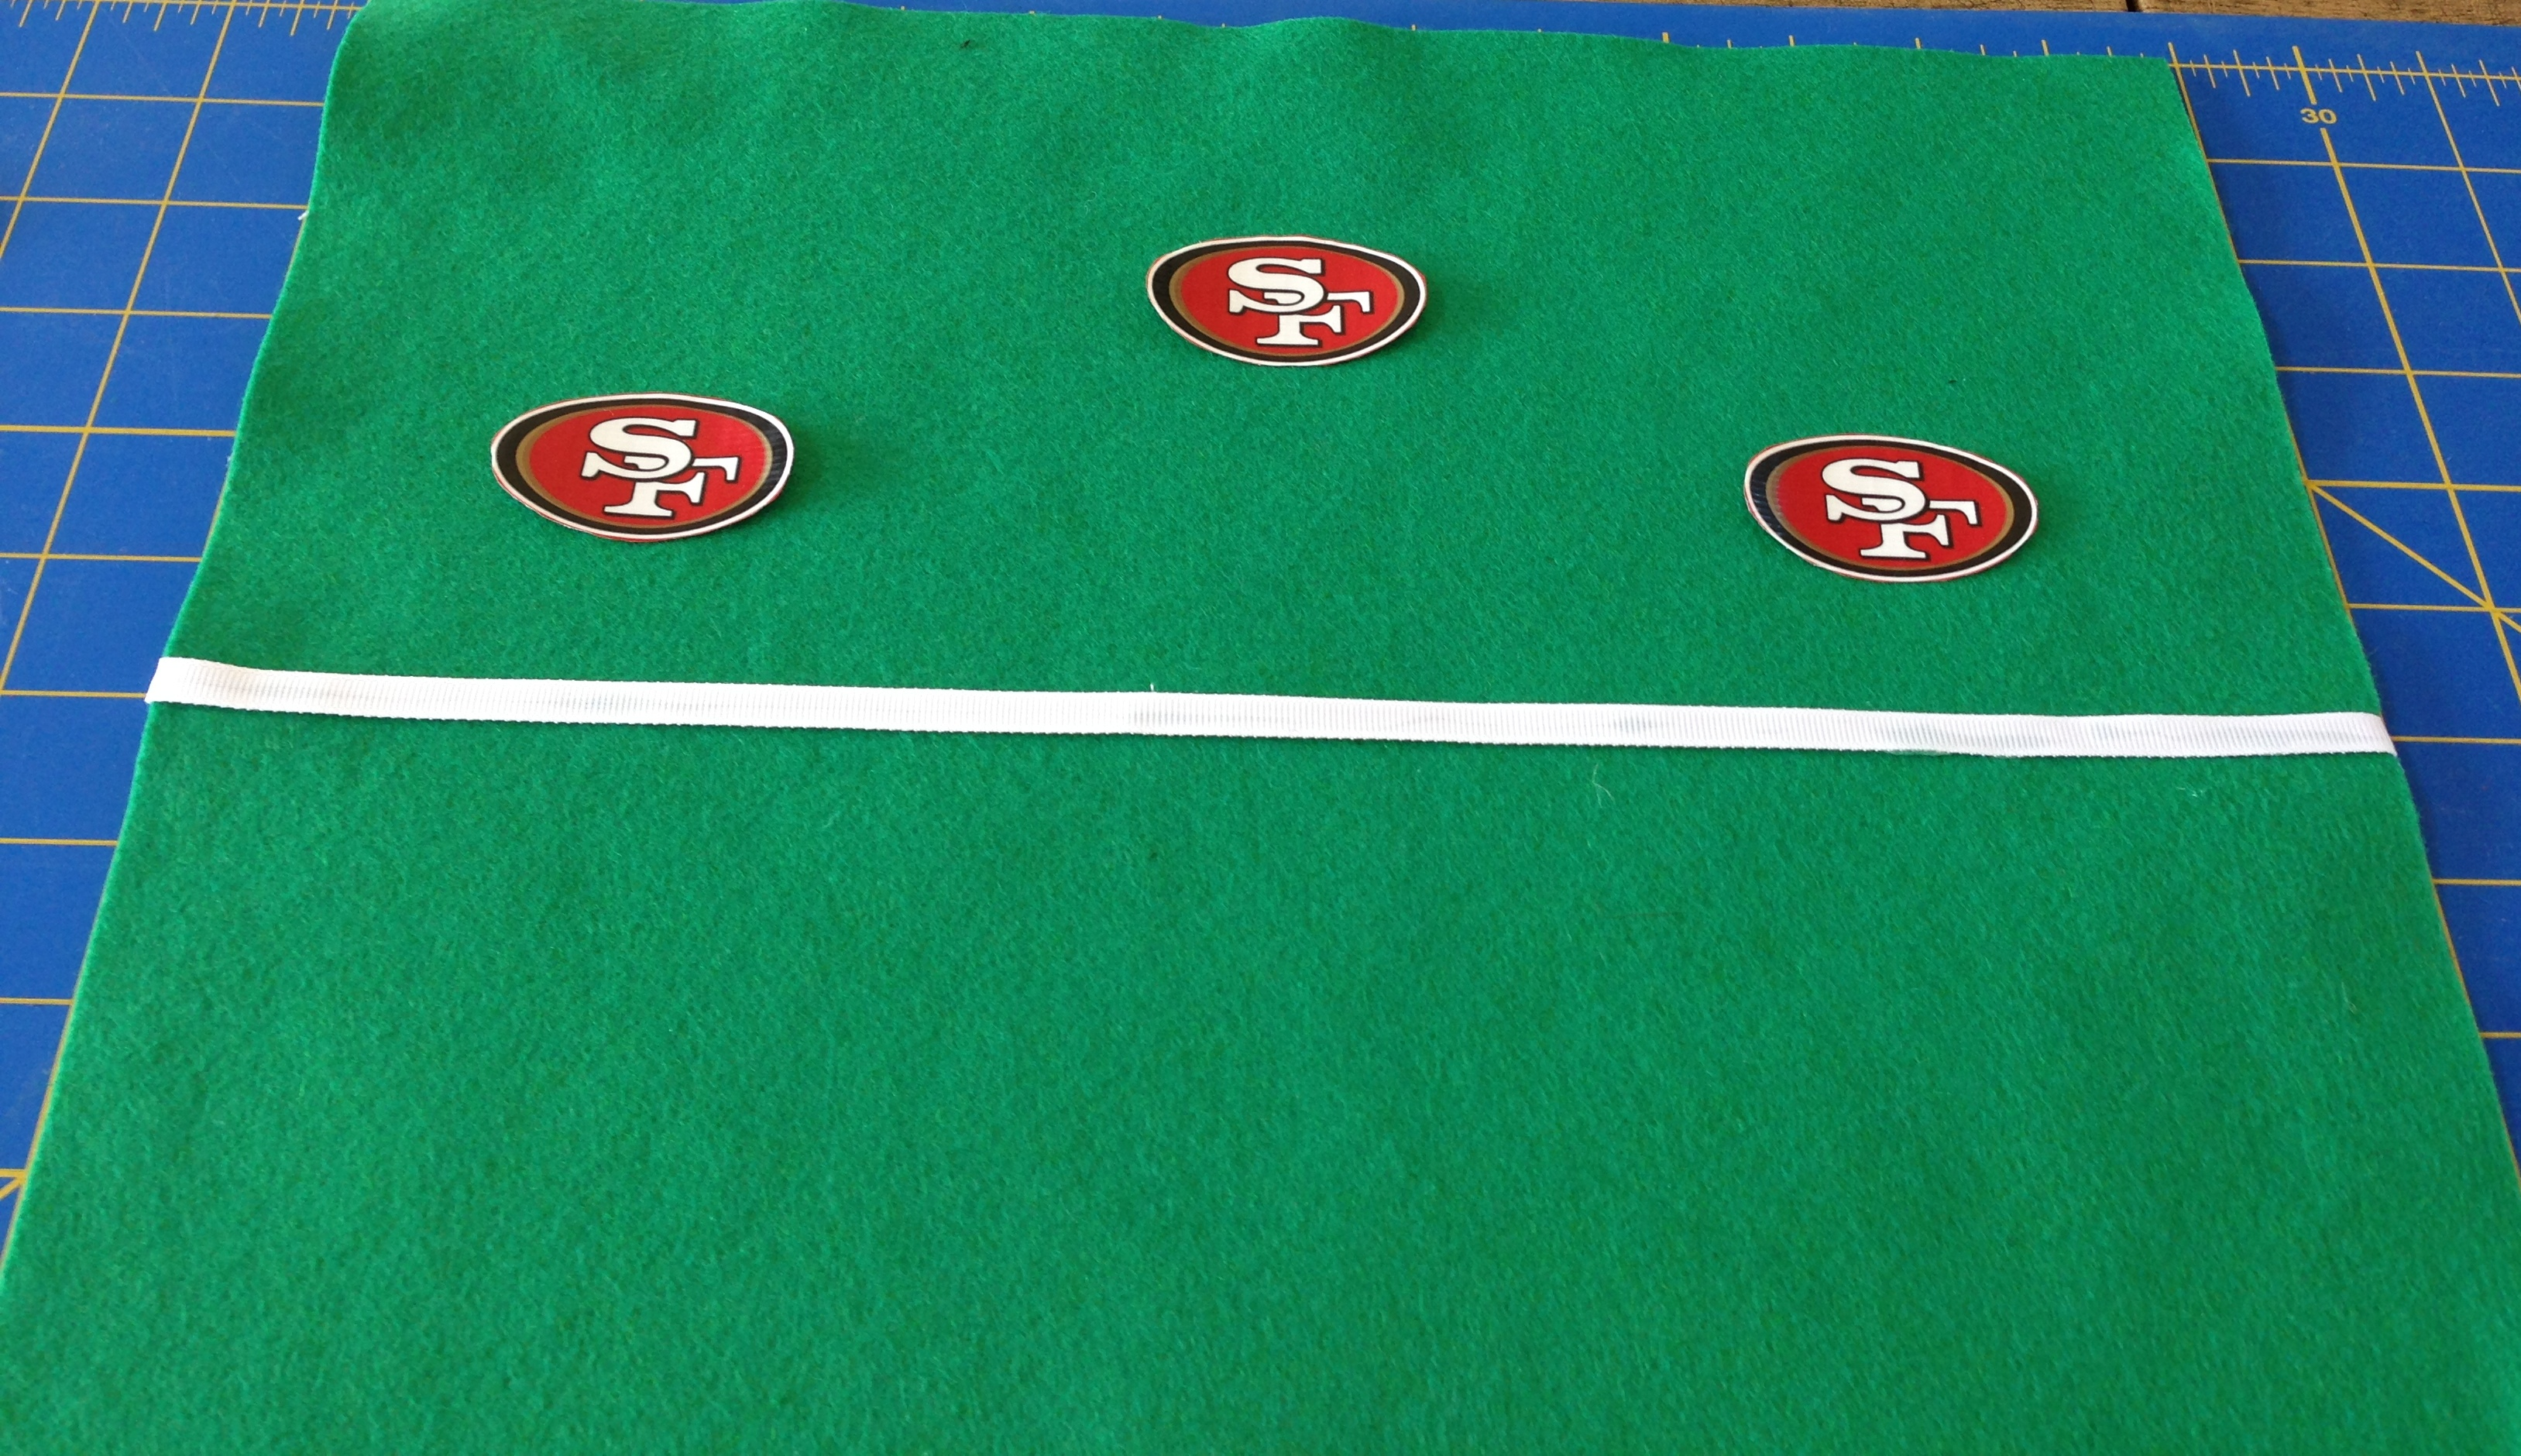 3 Logos in End Zone